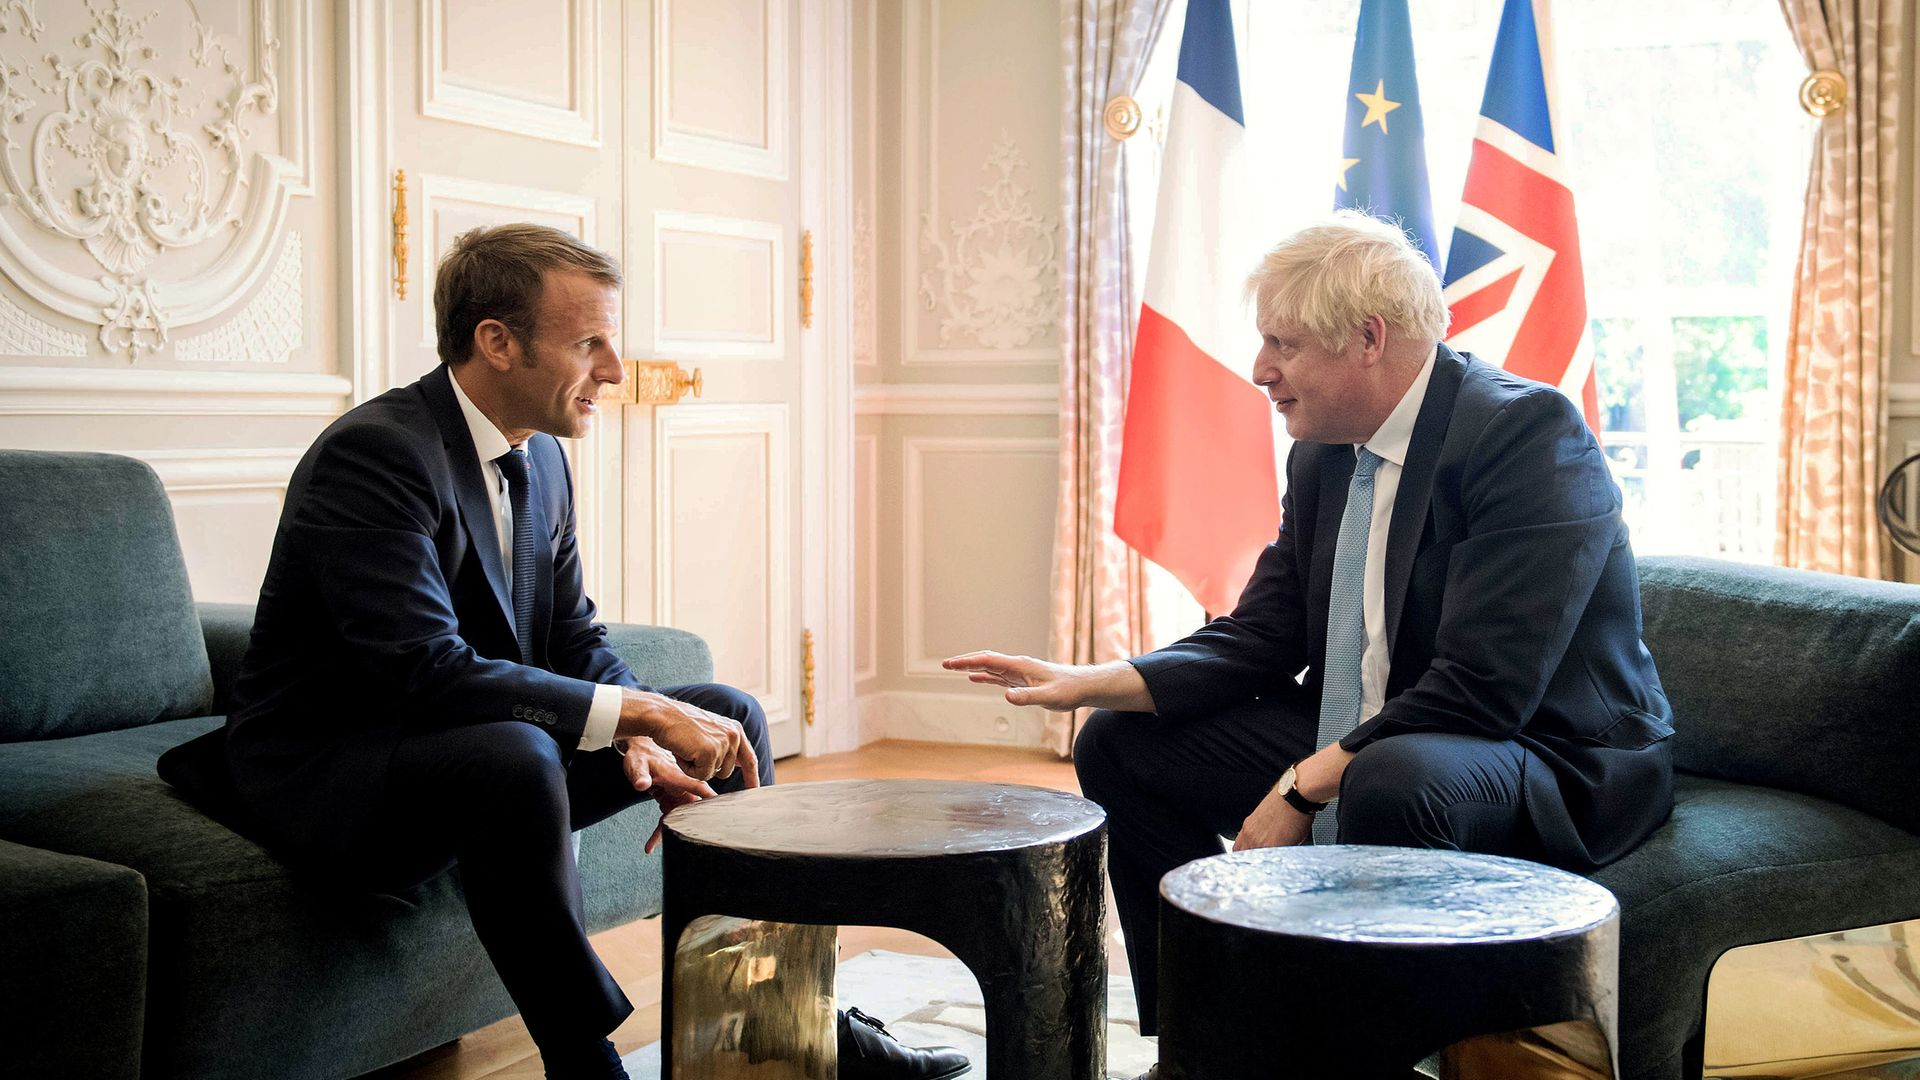 Prime minister Boris Johnson meeting French President Emmanuel Macron at the Elysee Palace in Paris ahead of talks to try to break the Brexit deadlock last year - Credit: PA